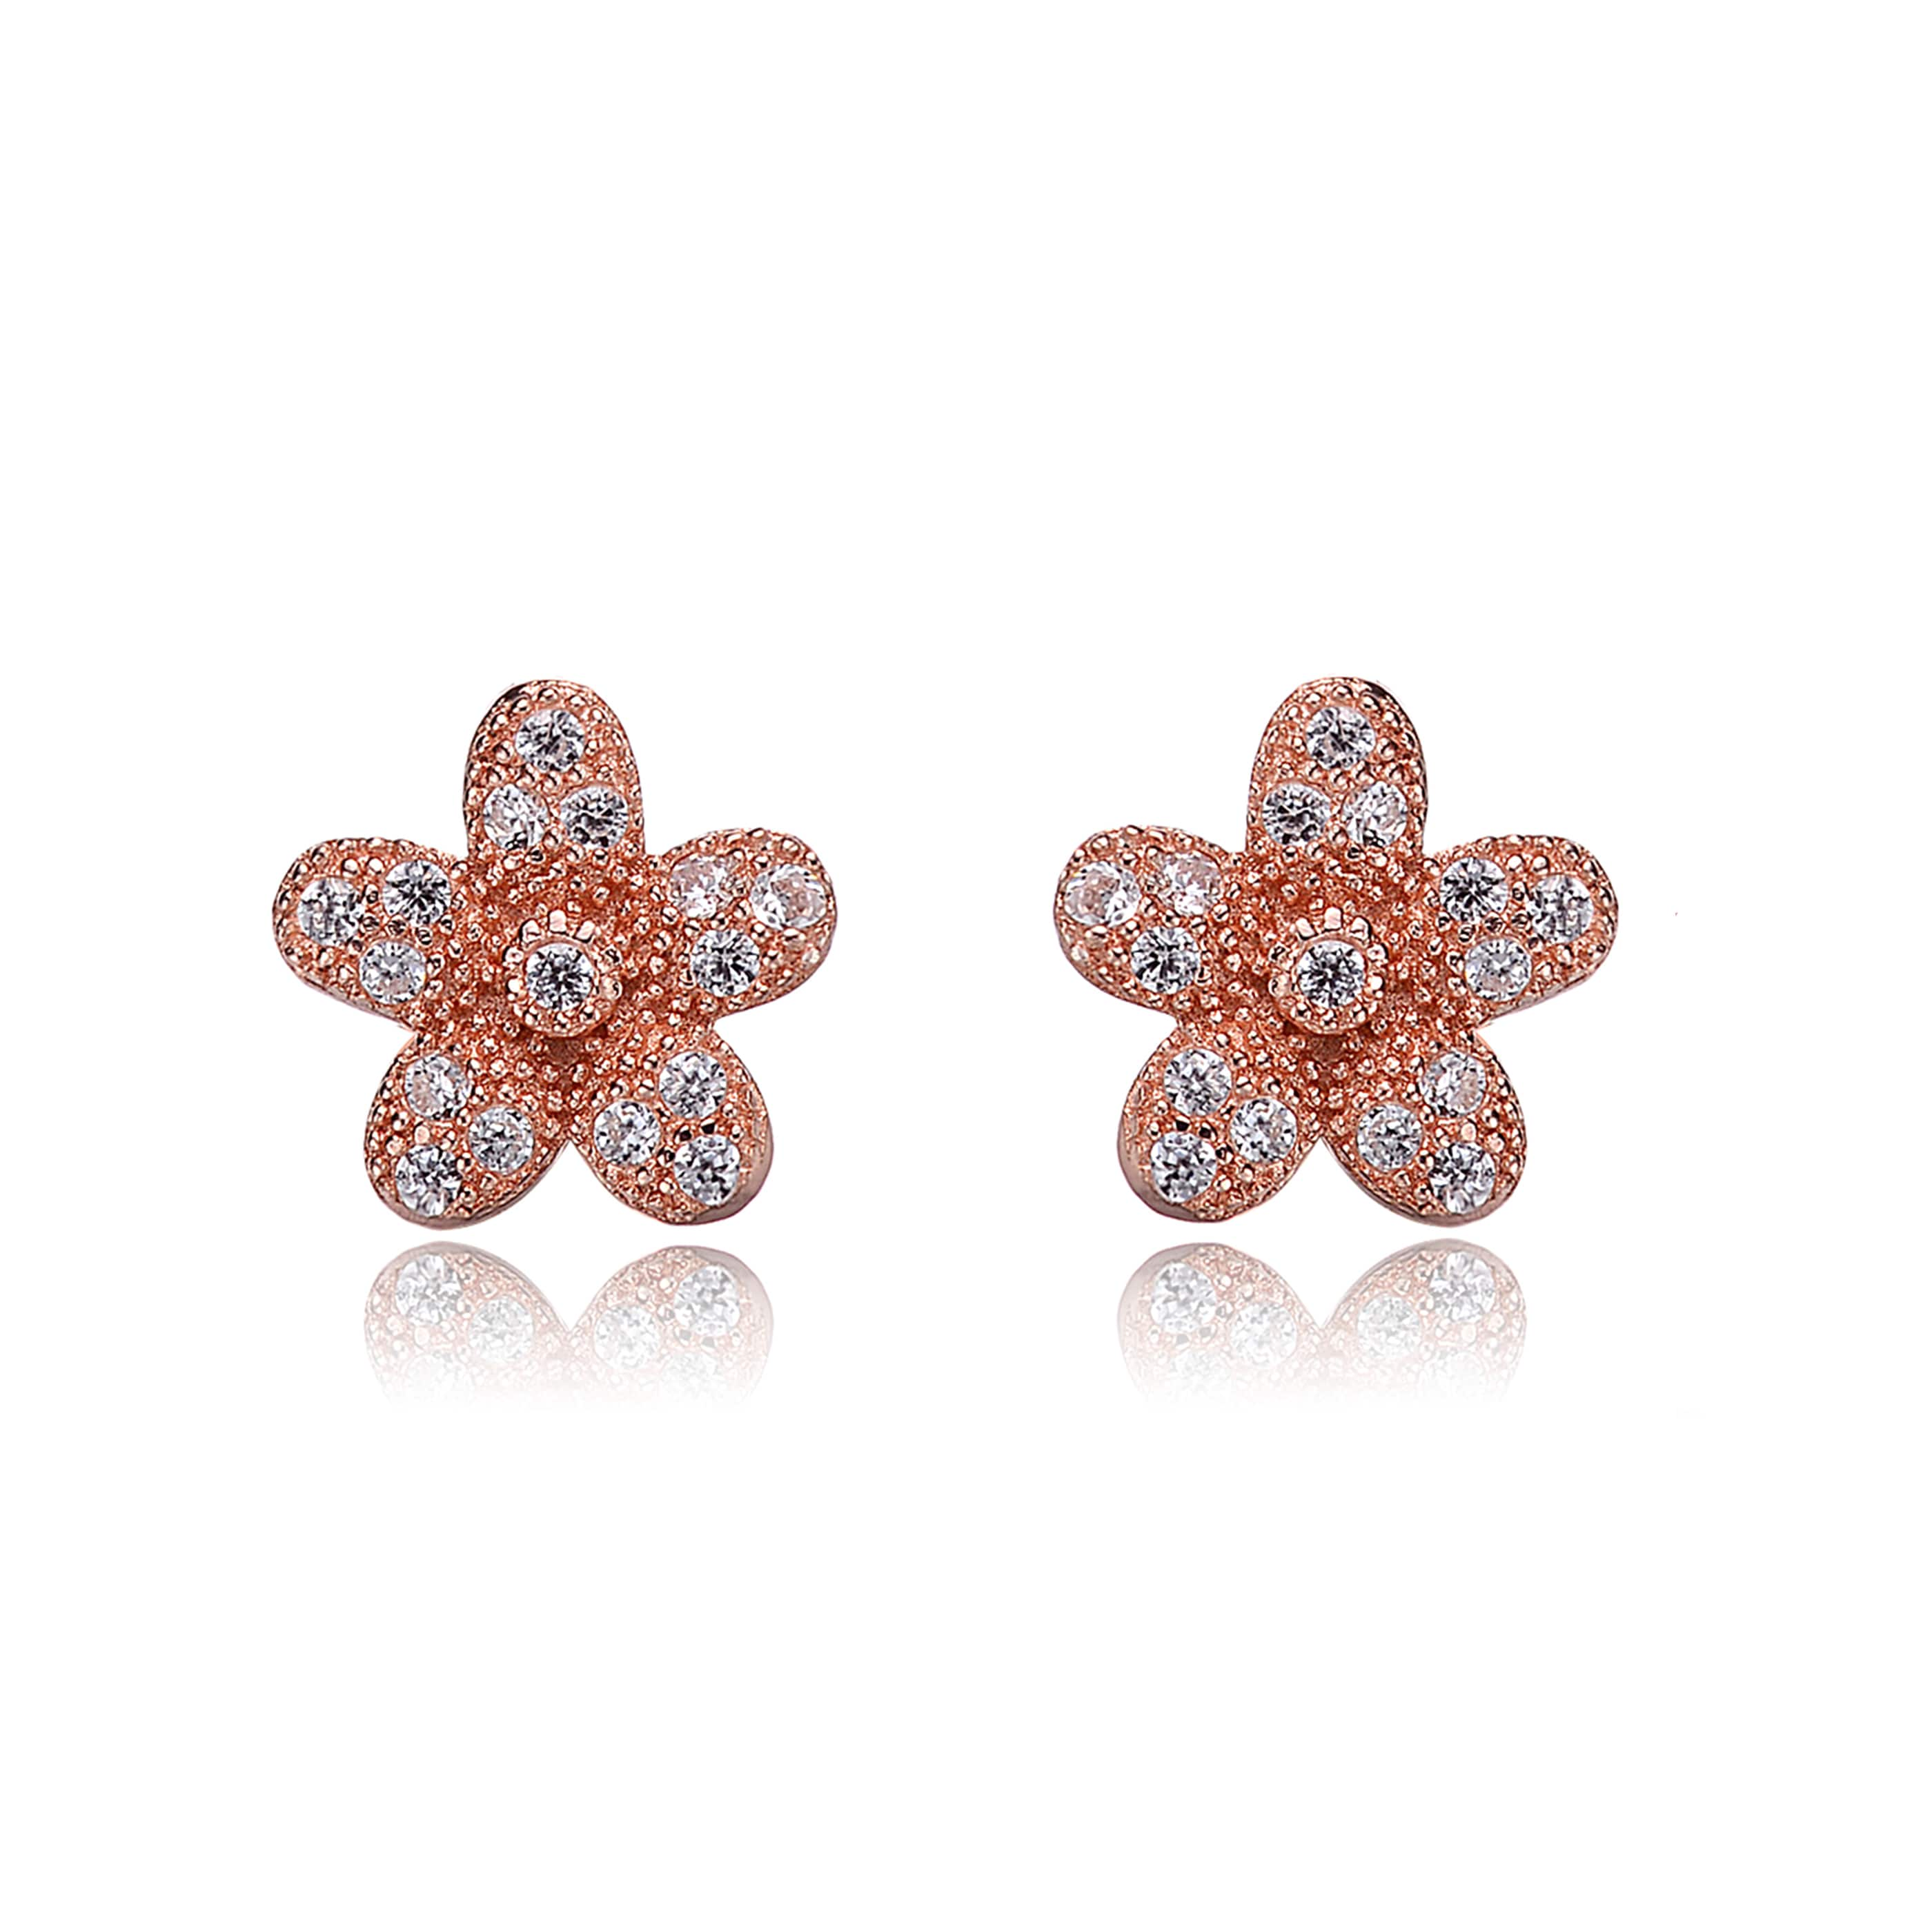 Collette Z Sterling Silver Cubic Zirconia Brushed Rose-gold Flower Stud Earrings at Sears.com